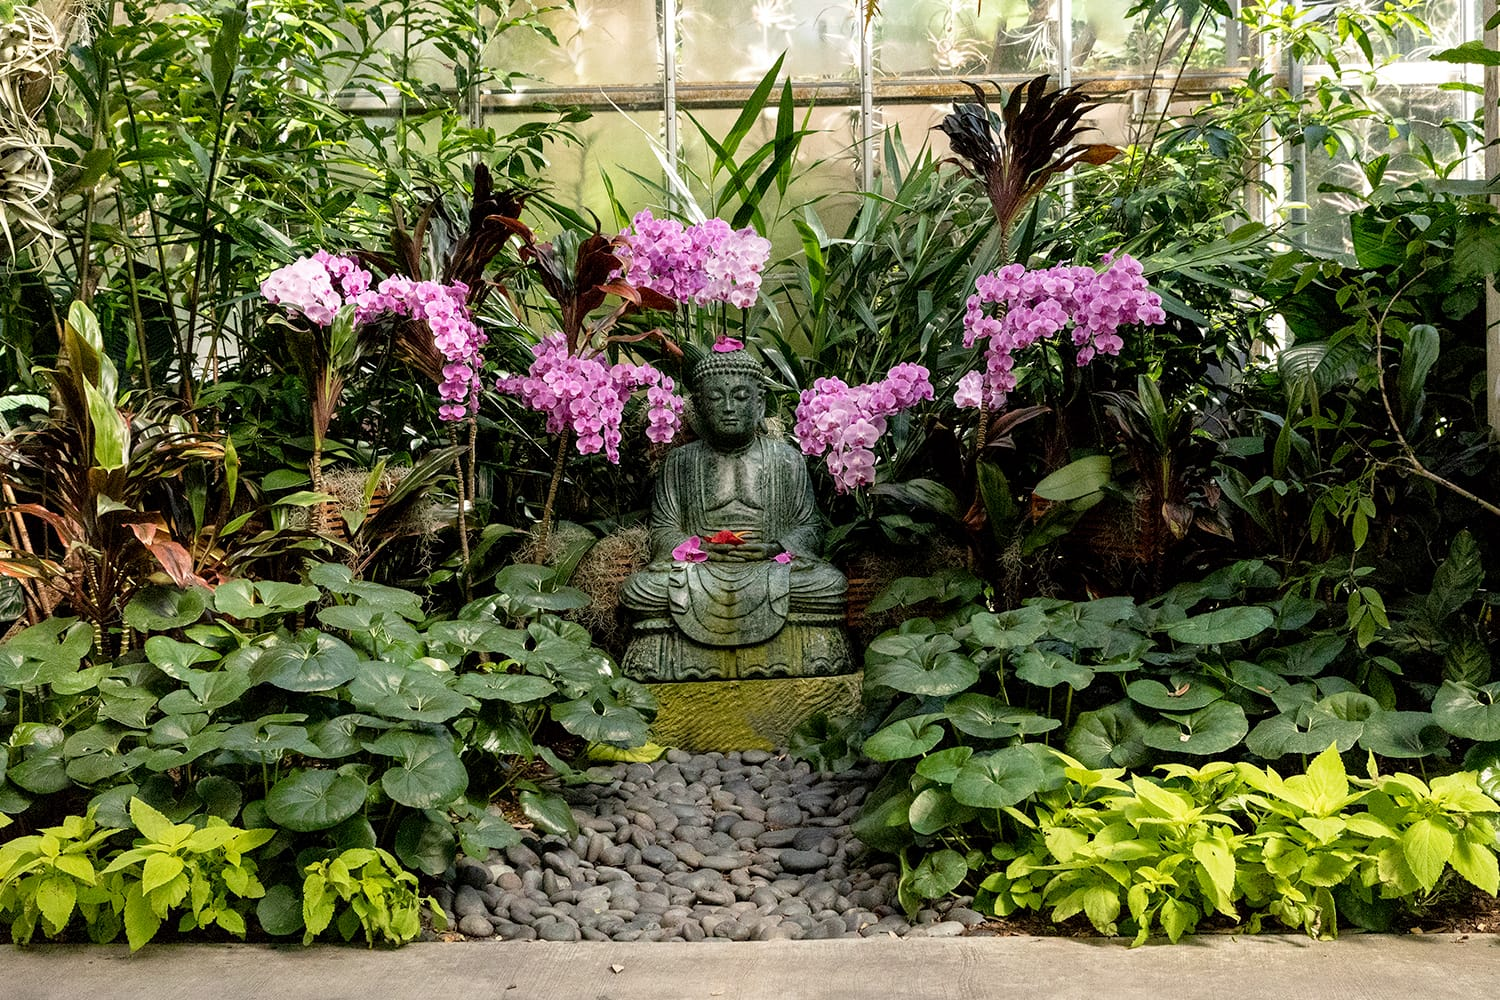 Statue of Buddha with purple orchids in the Marie Selby Botanical Garden in Sarasota, Florida, USA